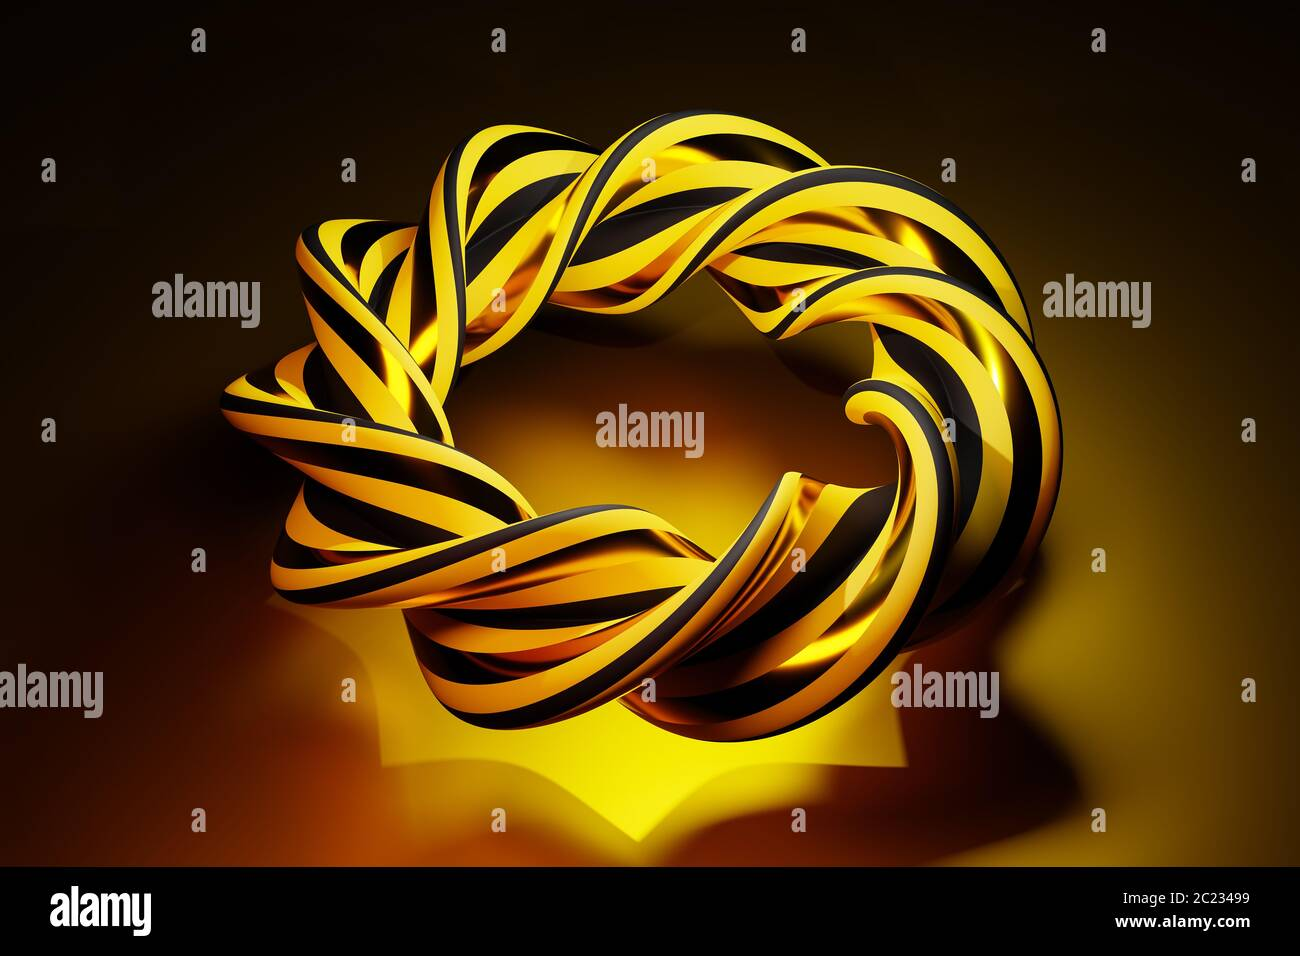 Complex intertwined abstract object in black and gold - concept for solving of complex problems - beauty in mathematics Stock Photo